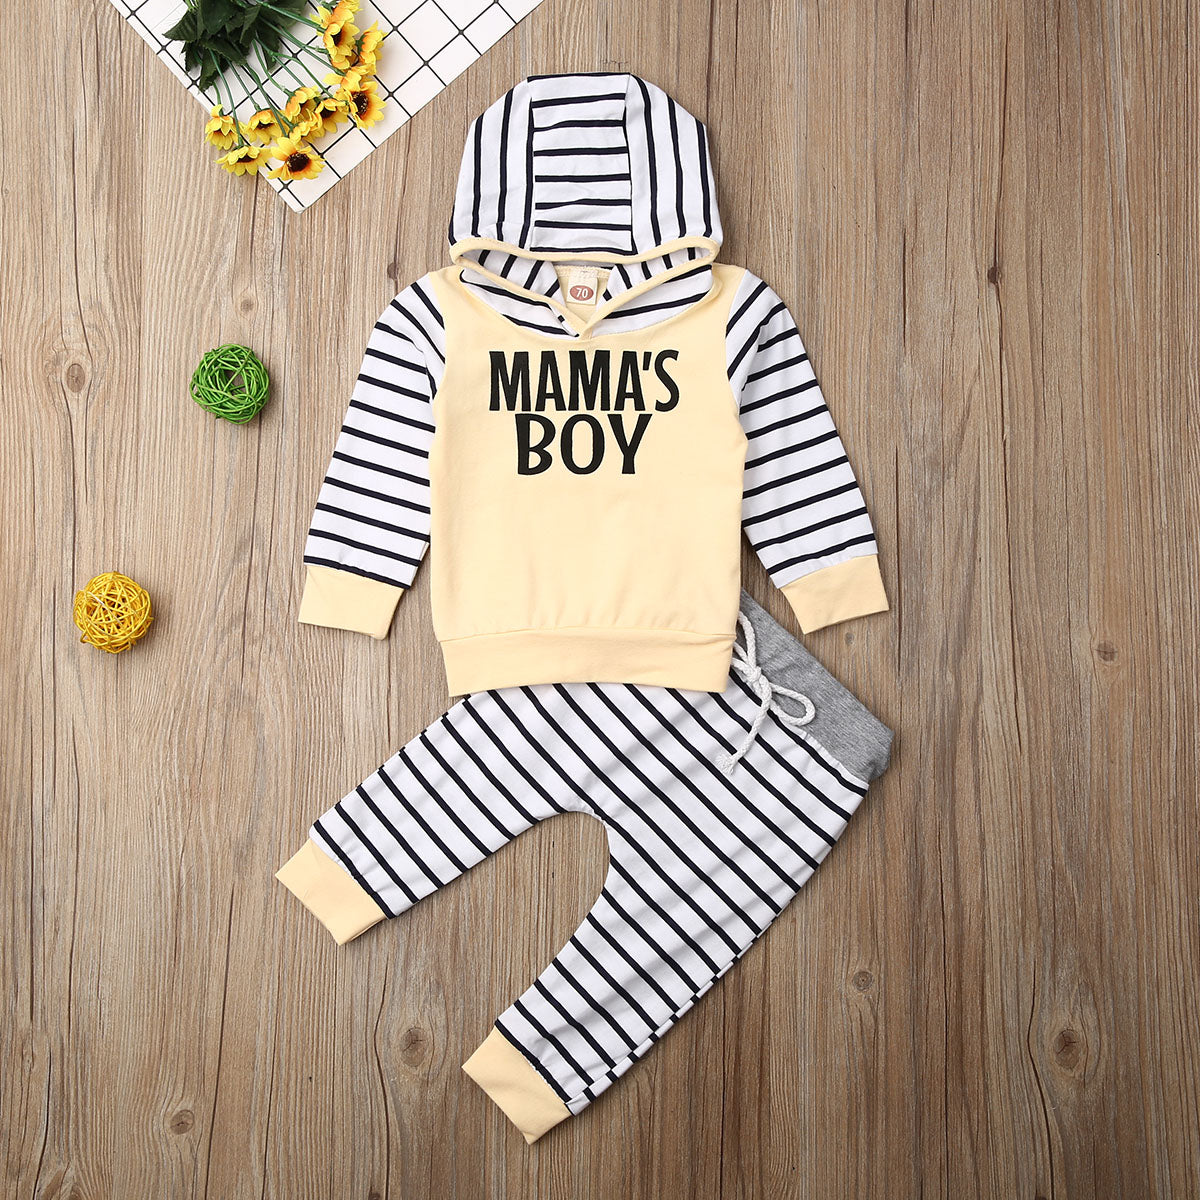 0-24 Months Newborn Kids Baby Boys Letter Tracksuit Pullover Top+Pants Clothes Outfits Set